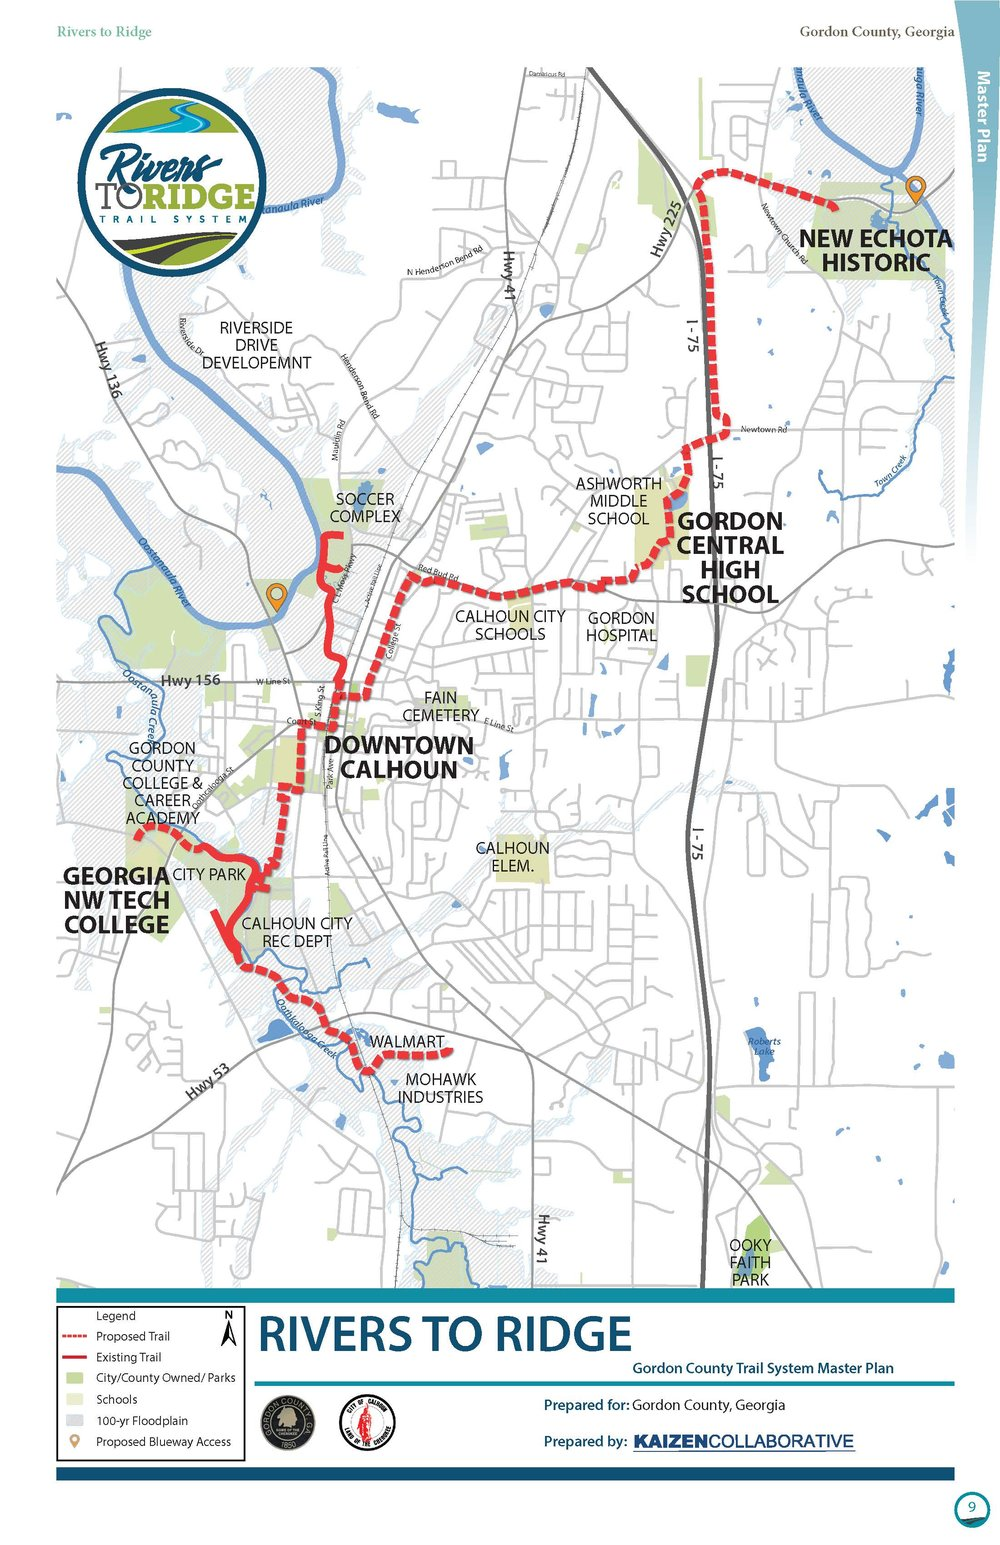 Proposed Overall Plan for the Rivers to Ridge Trail System